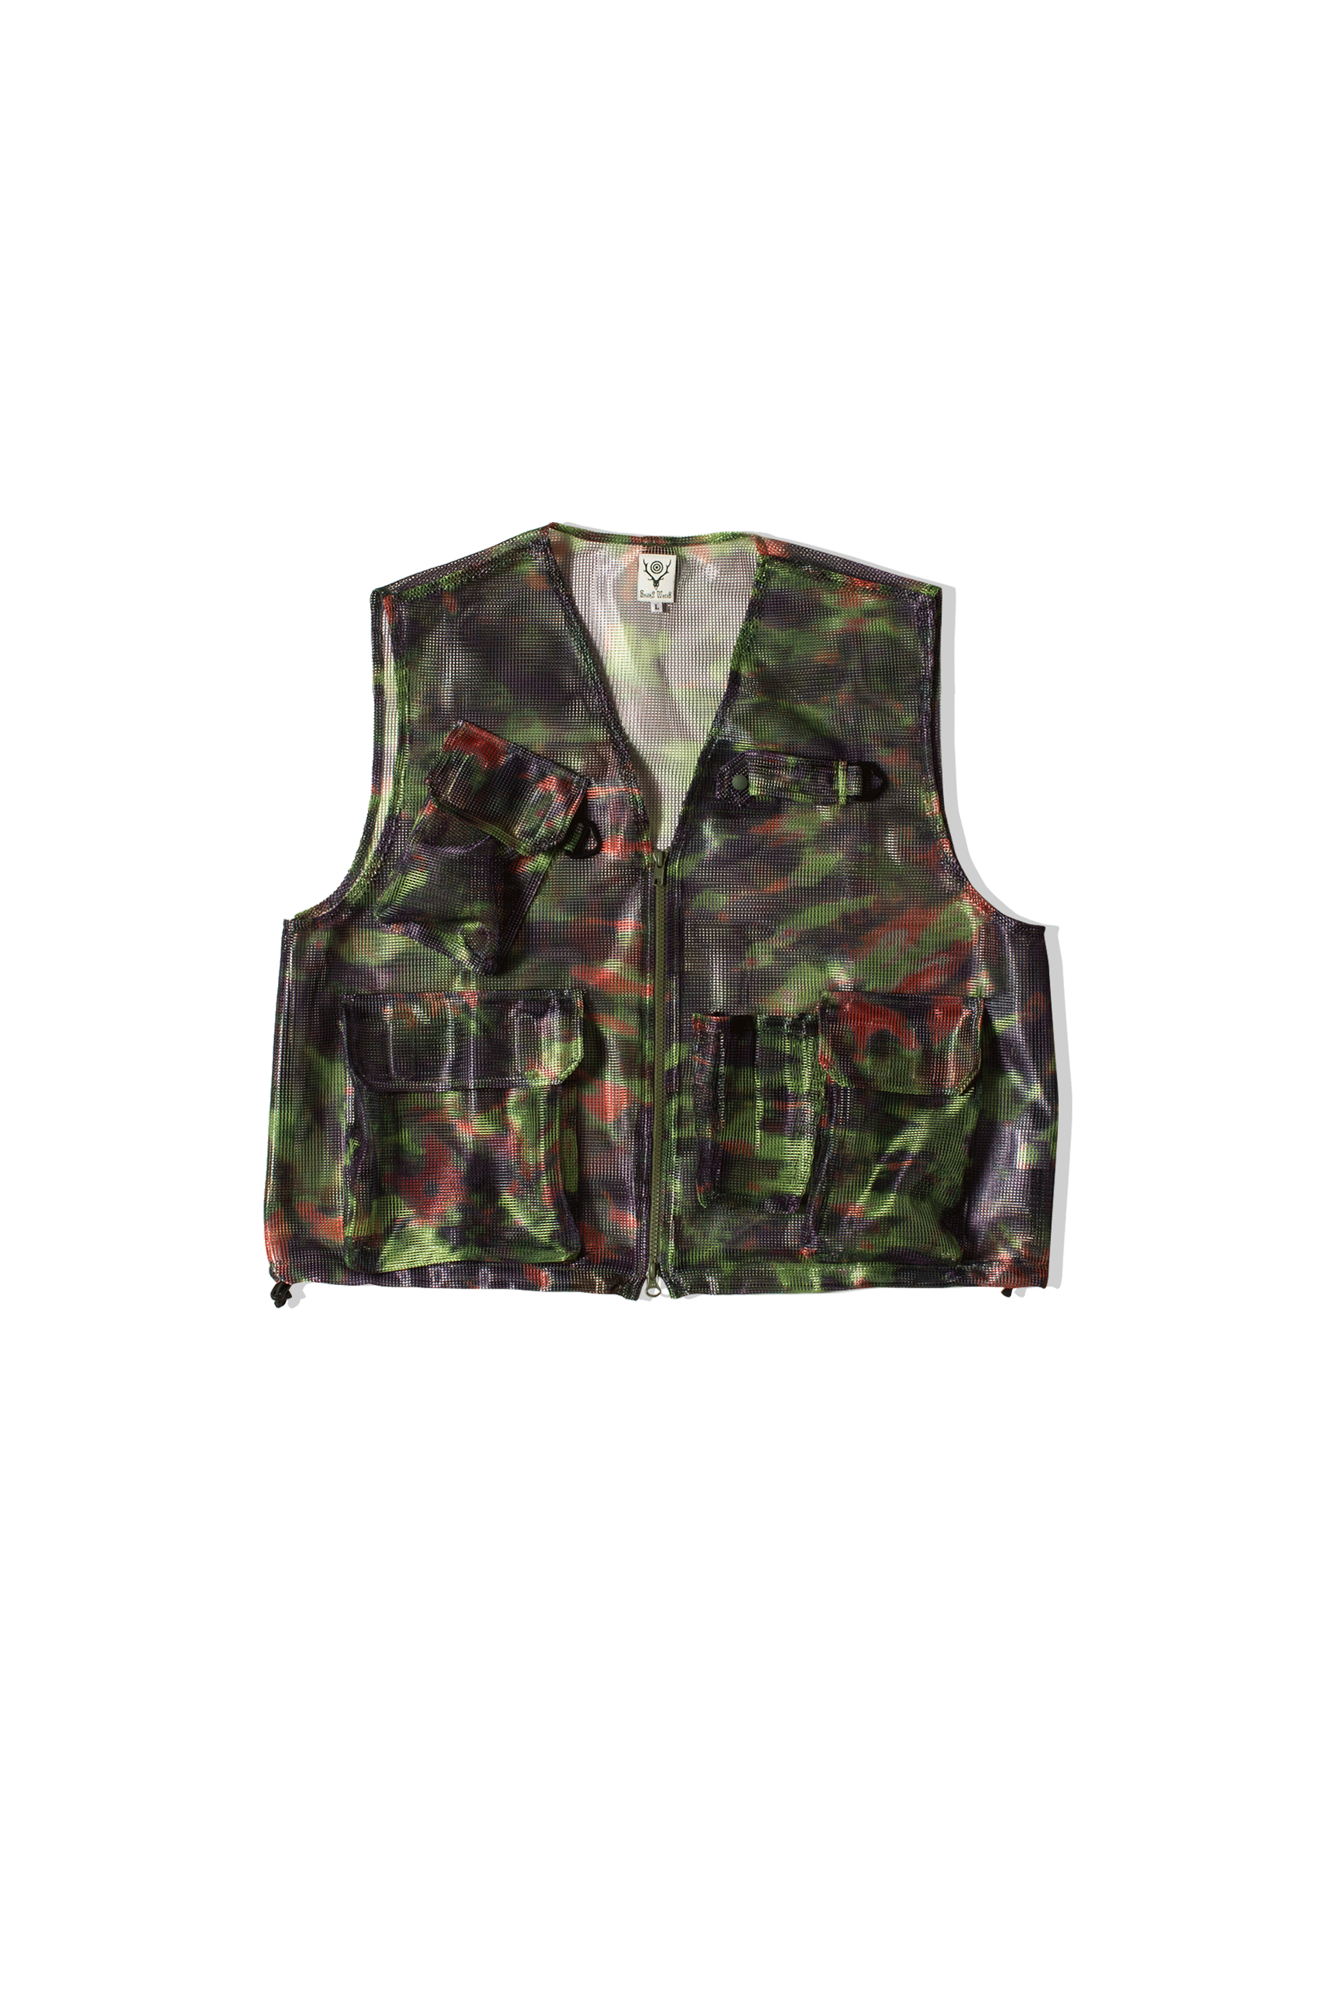 South2 West8 Gilet Bush Trek Heavyweight Mesh Vest Multicolore IN796#000#TIEDYE#M - One Block Down